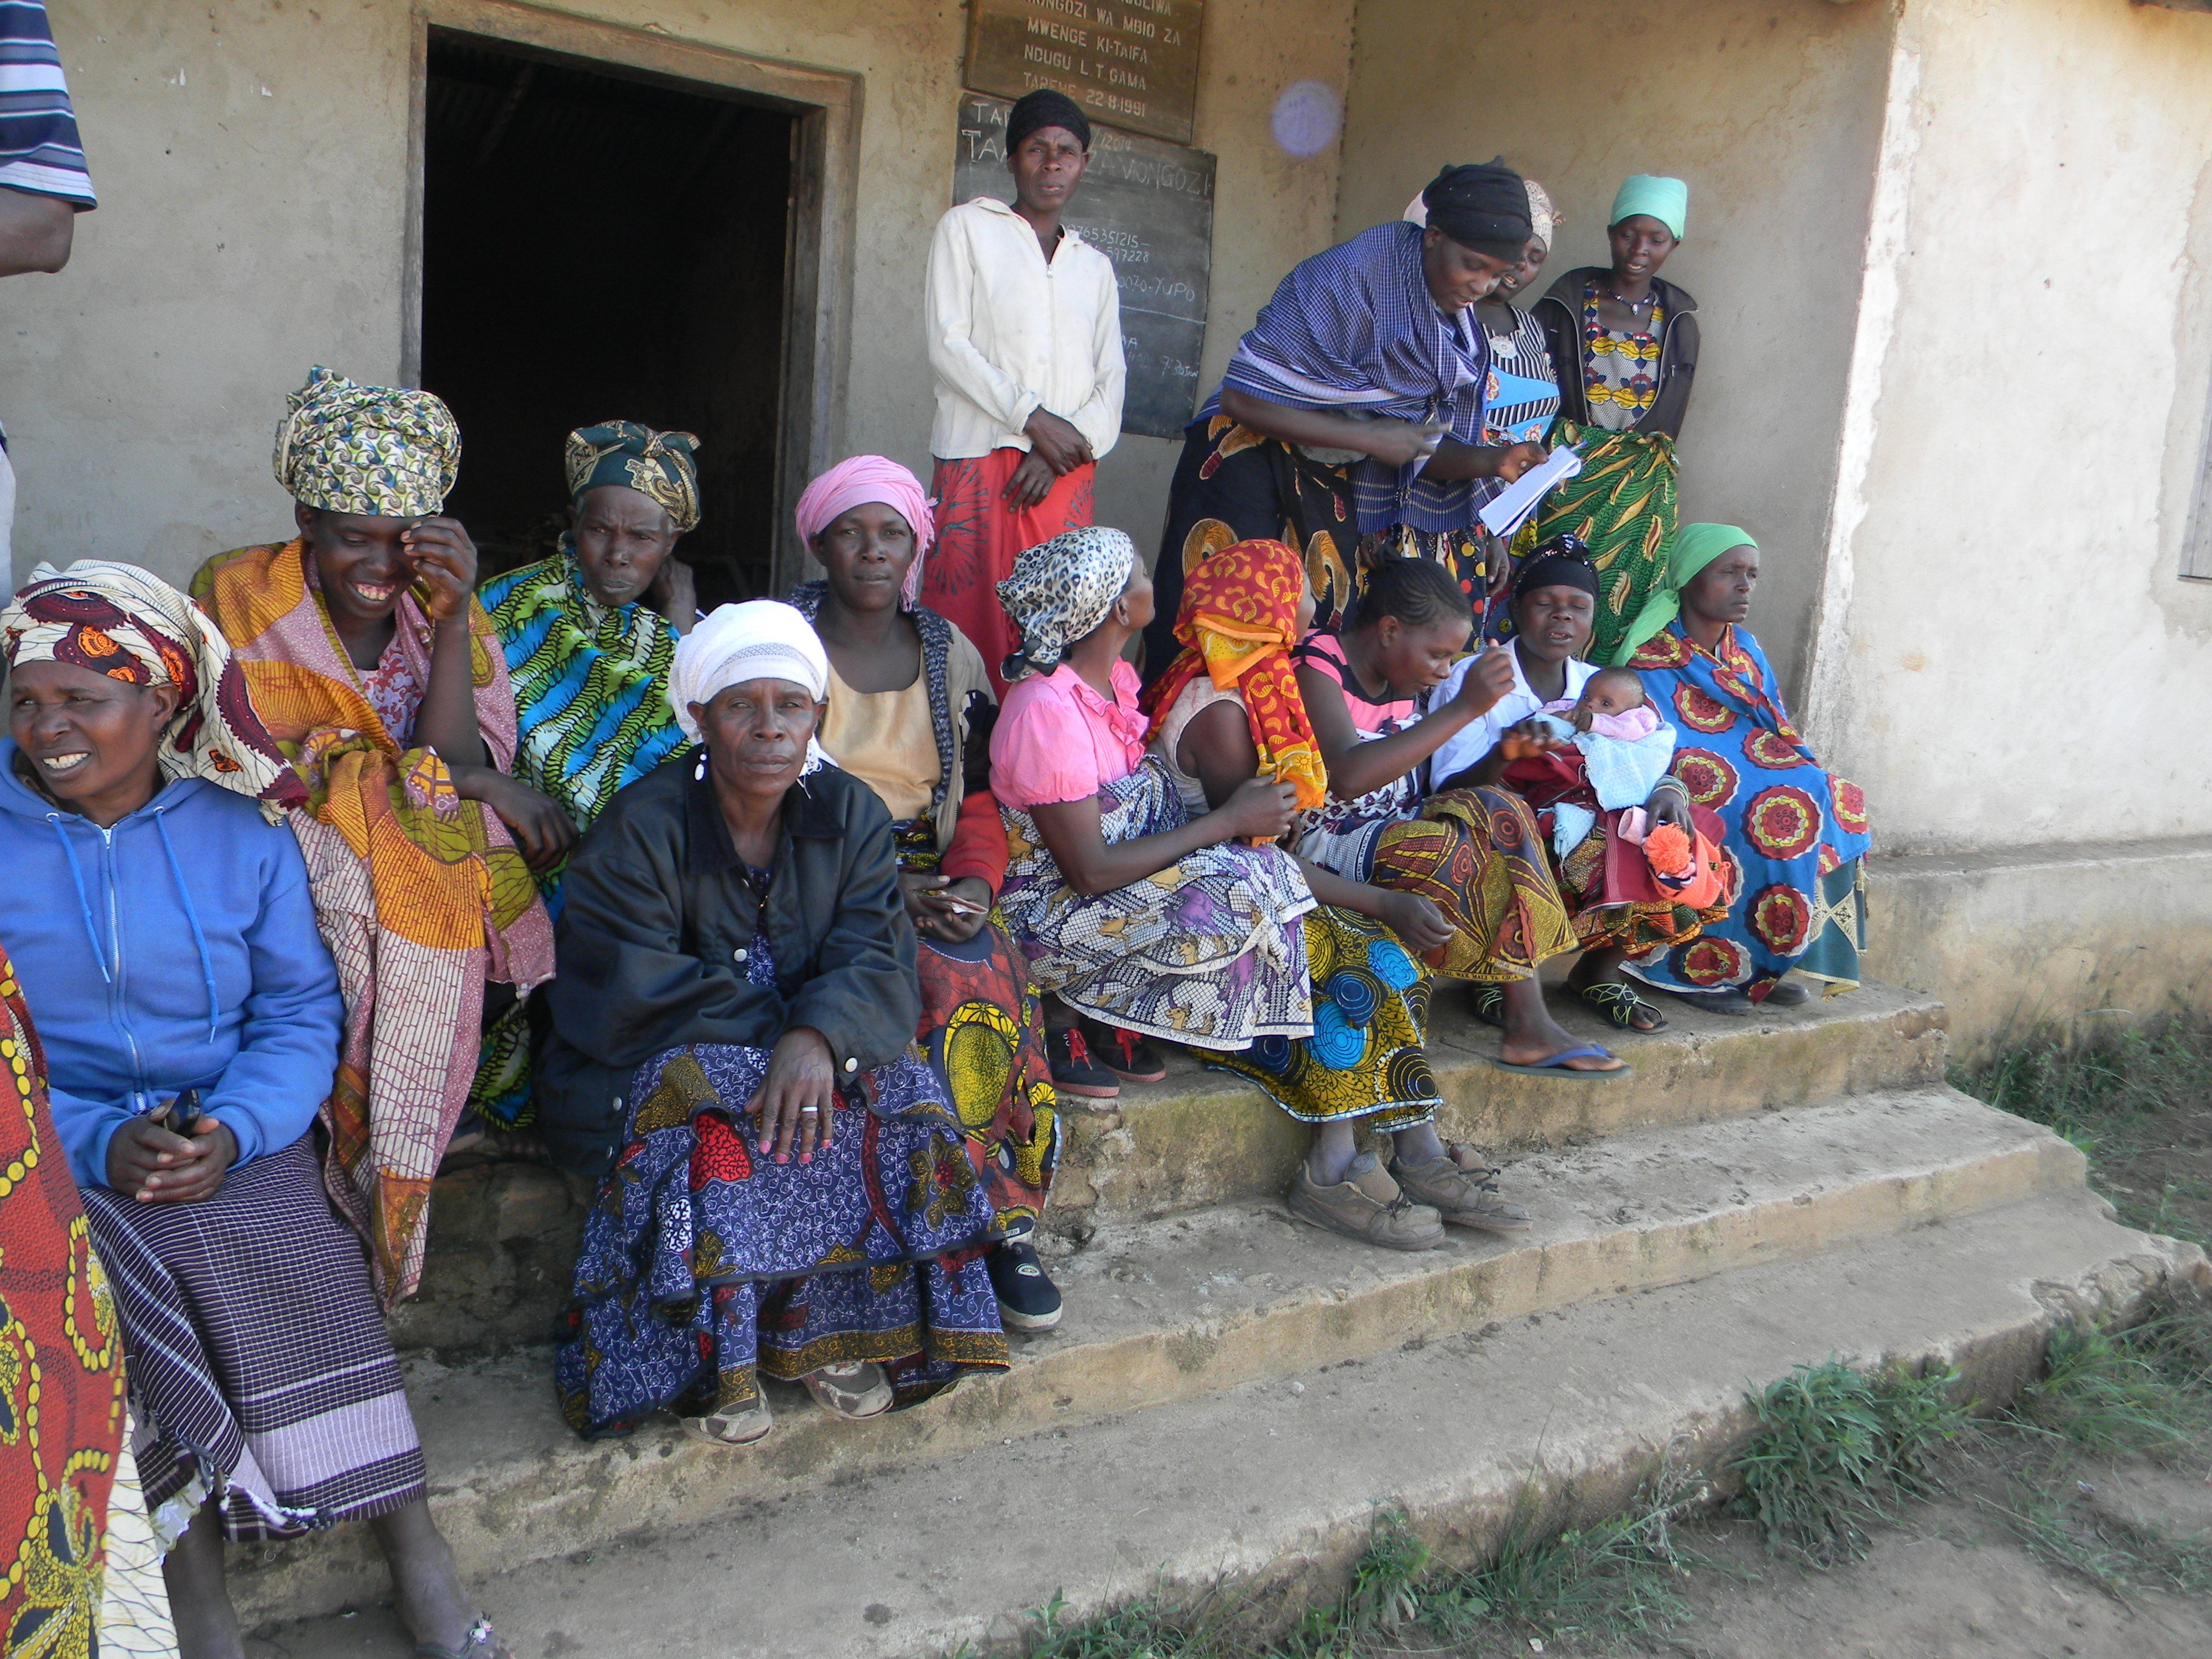 Tanzania: Communities are fighting for their rights